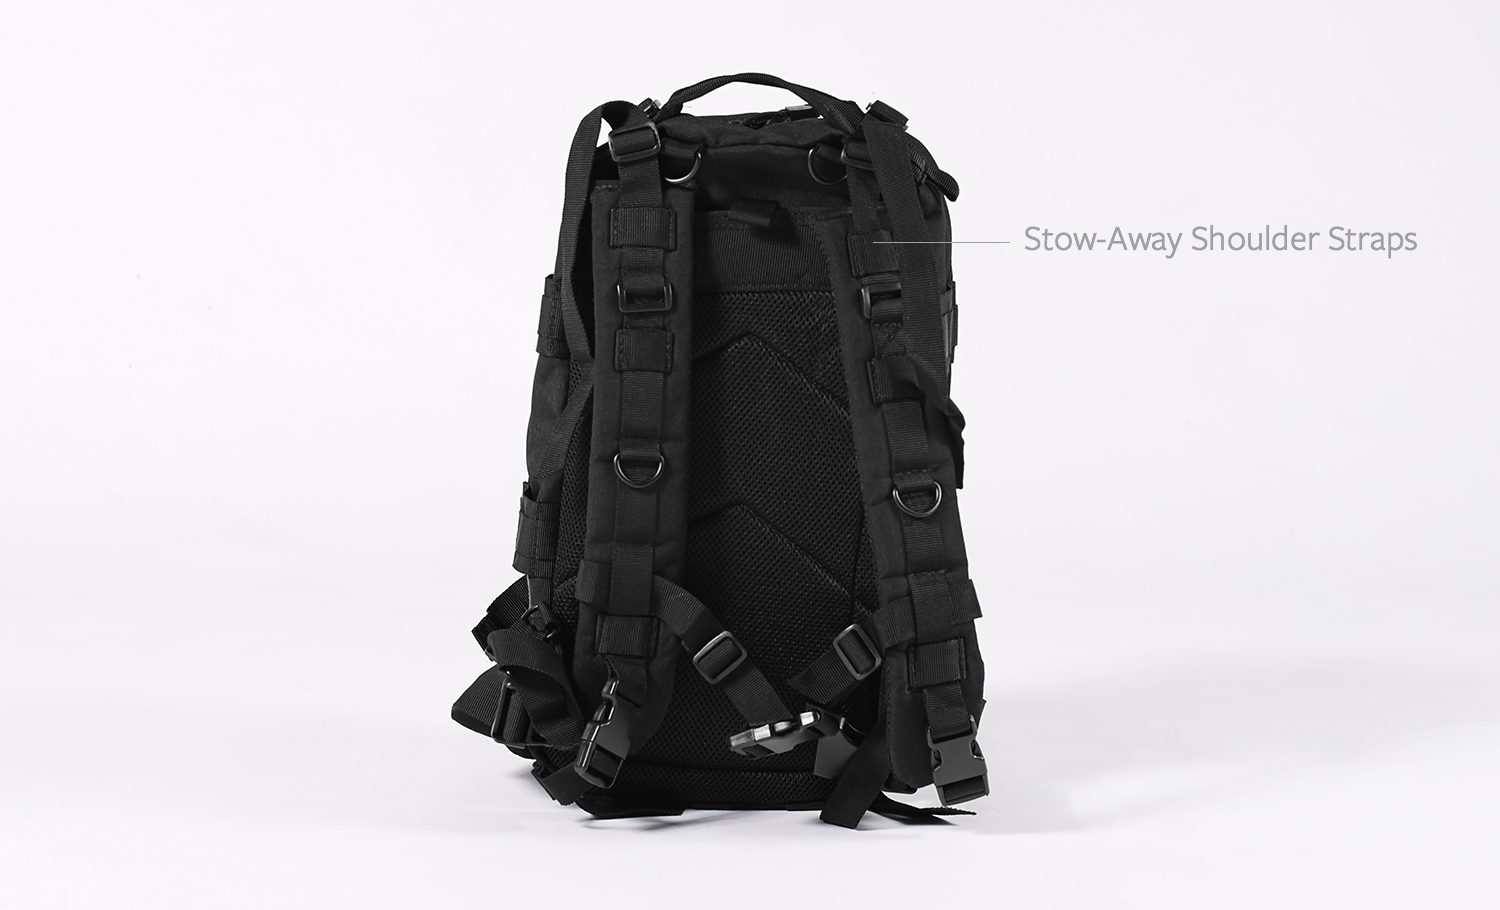 SOLO PACK Stow-Away Shoulder Straps